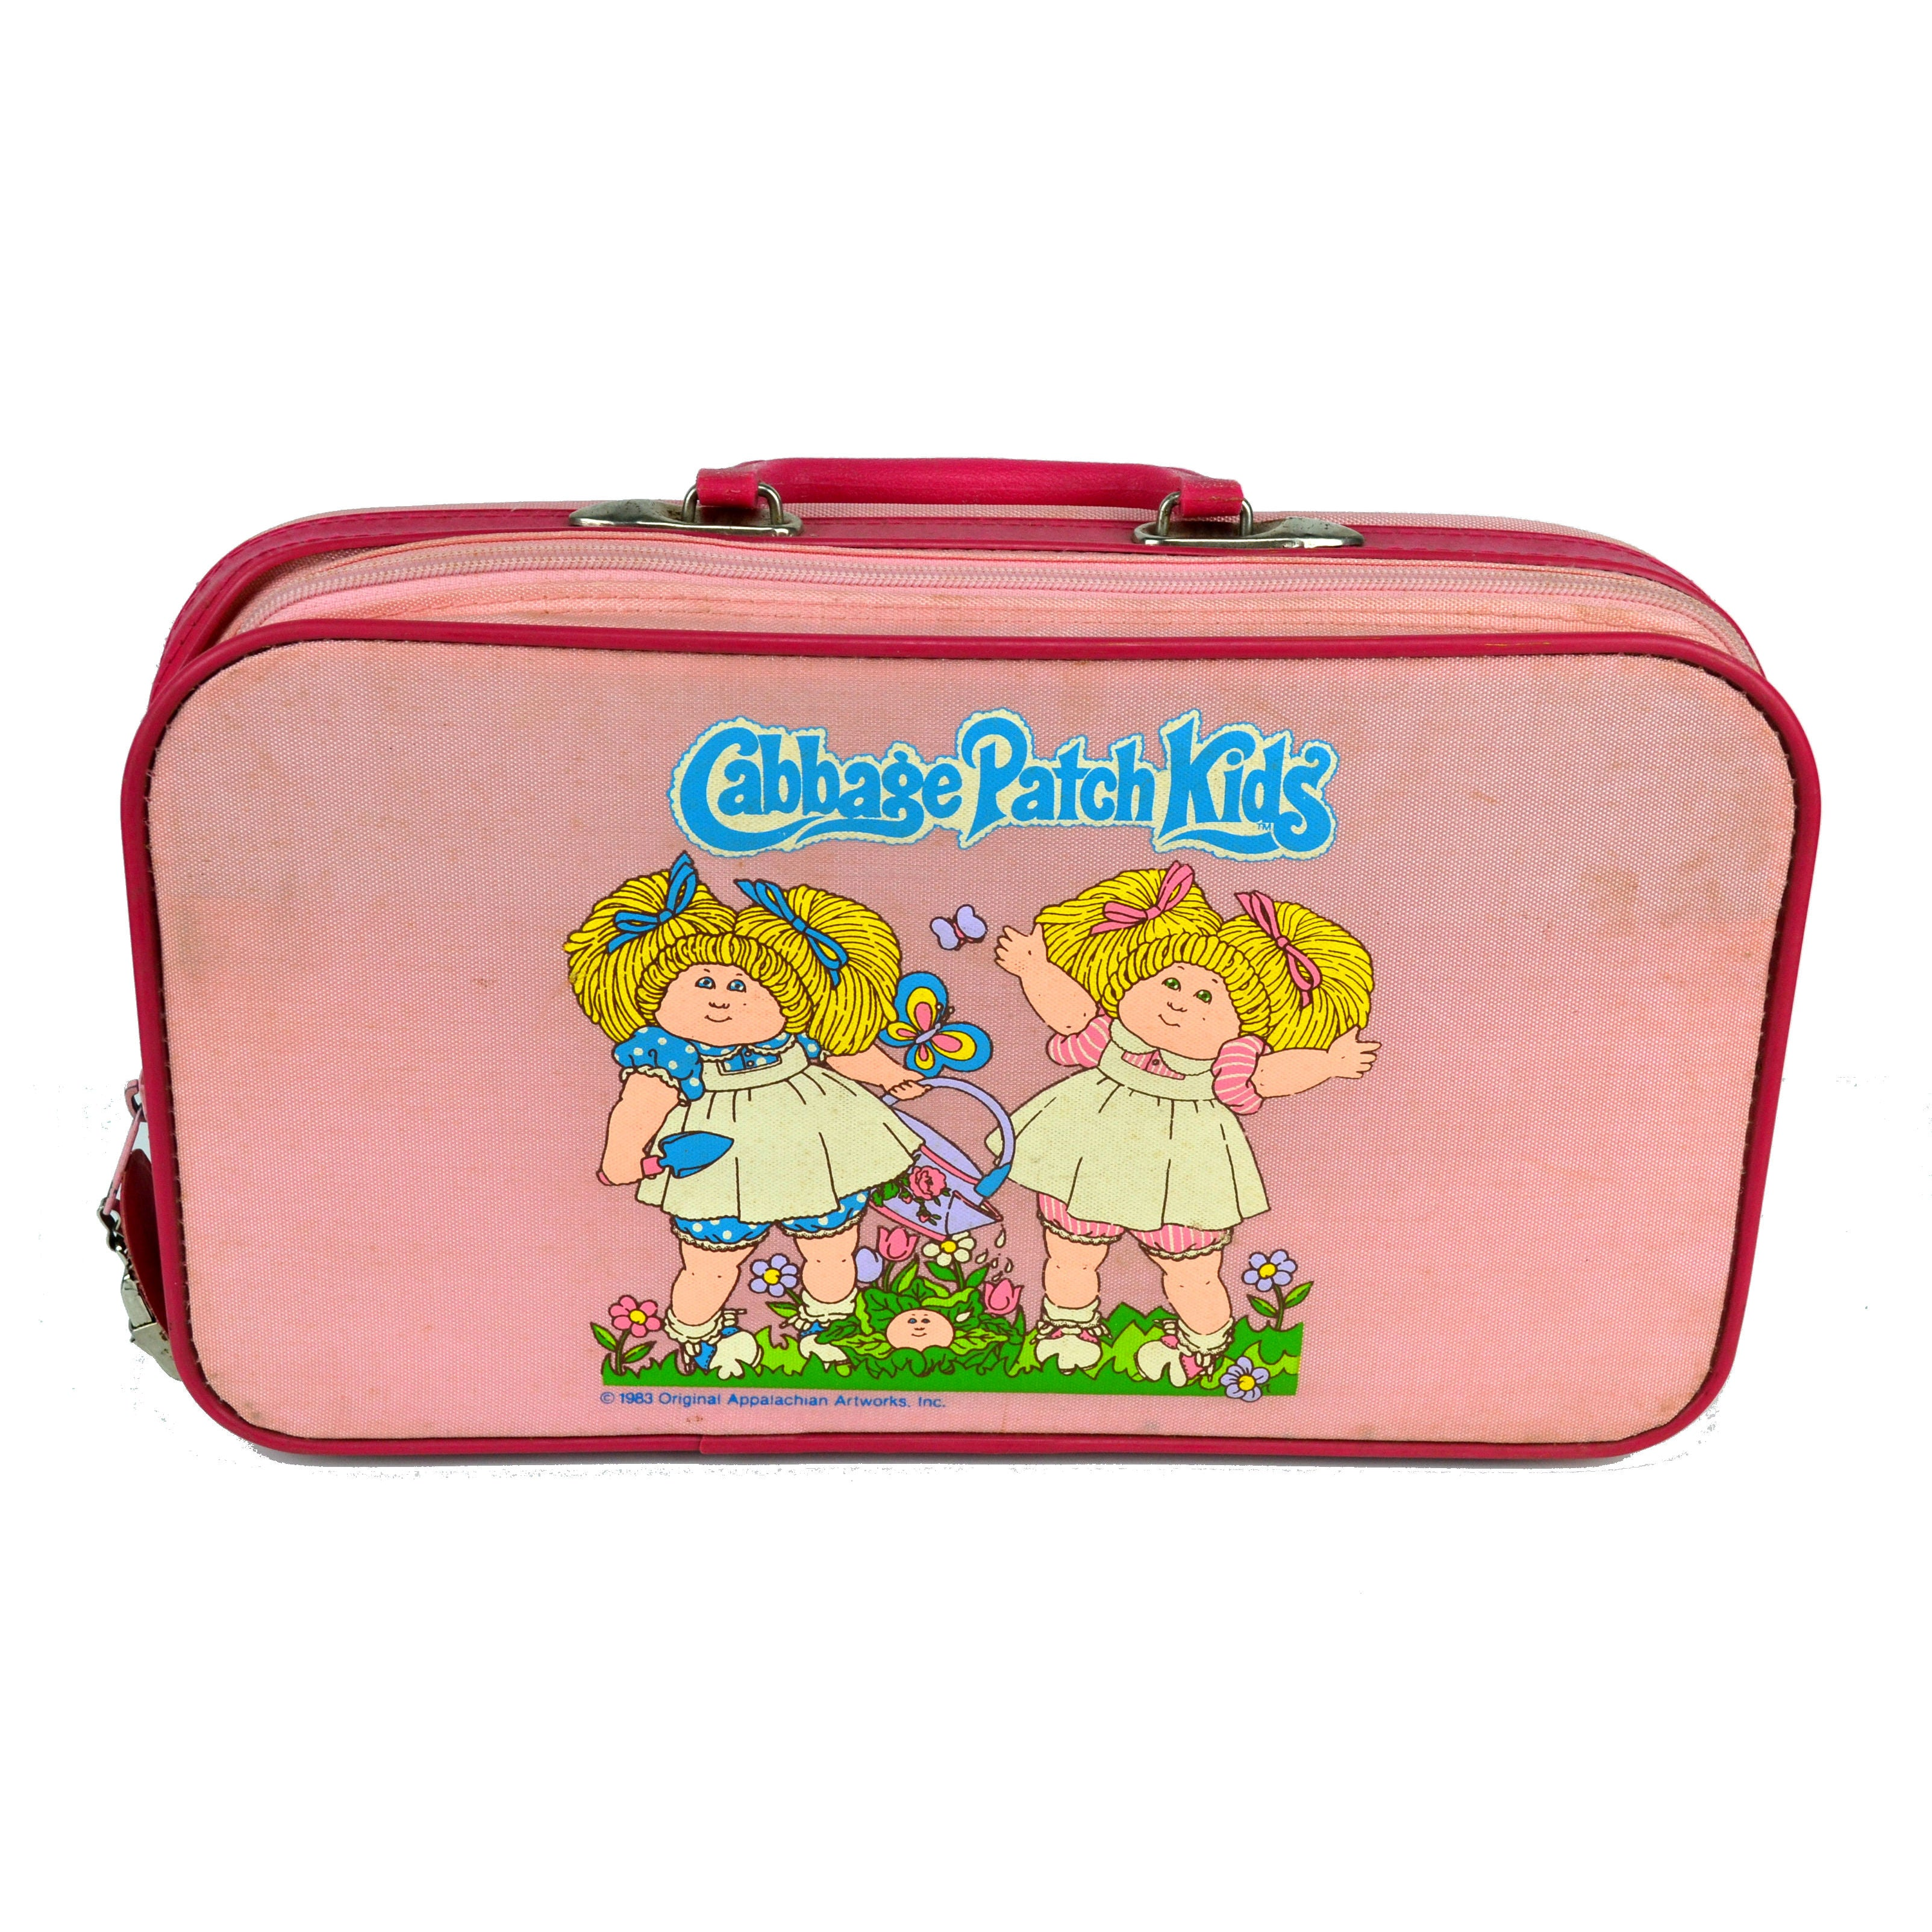 graphic relating to Cabbage Patch Logo Printable known as Common 1983 Cabbage Patch Young children Red Suitcase Bags Sleepover Right away Bag